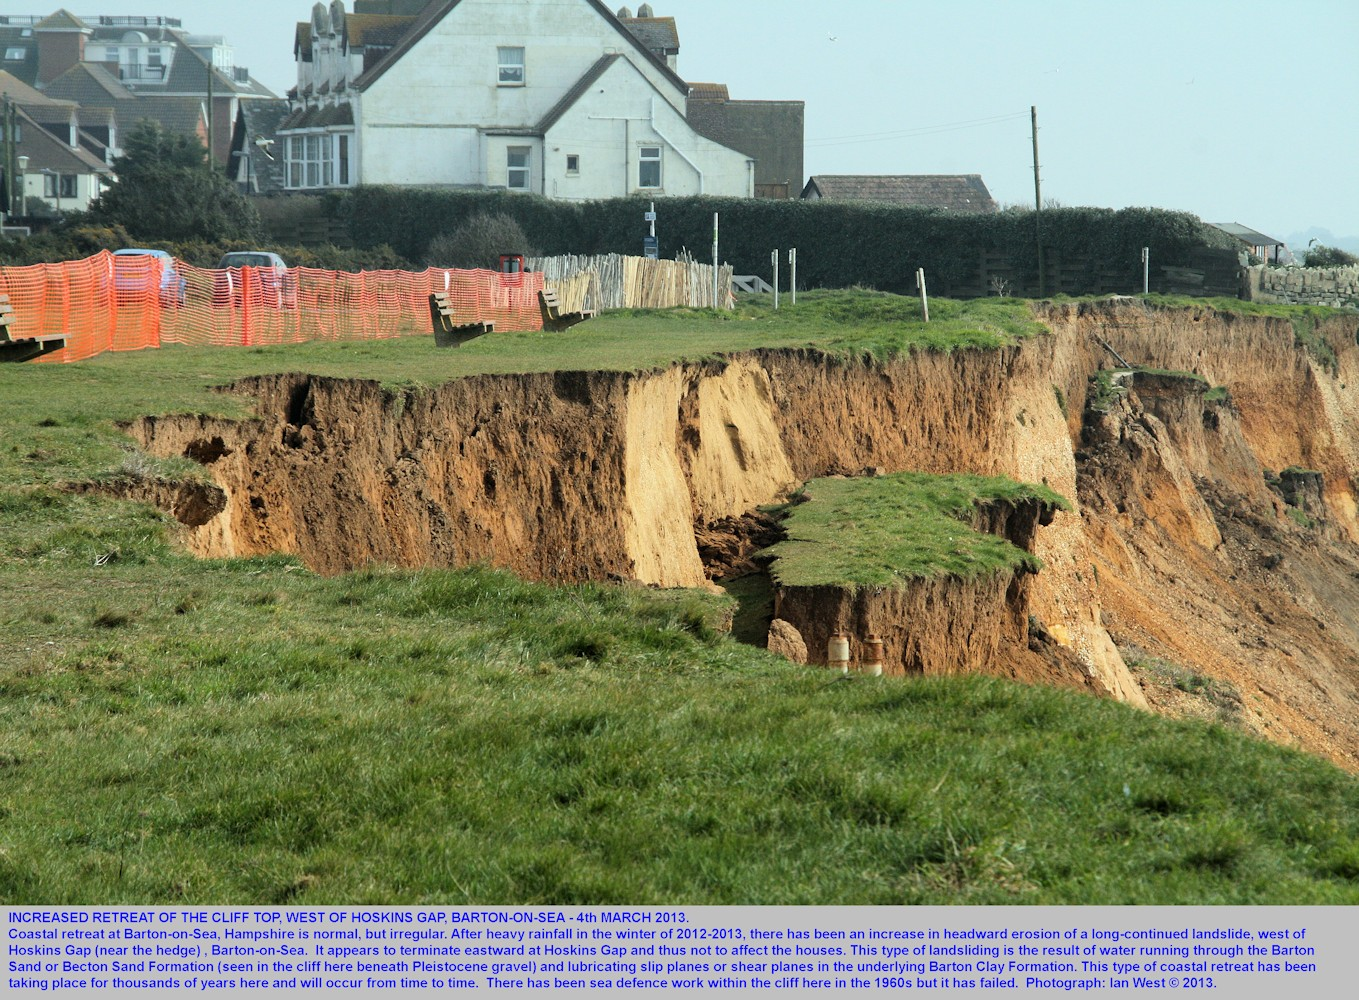 A new phase of retreat of the cliff top at the greensward, west of Hoskins Gap, Barton-on-Sea, Hampshire, 4th March 2013